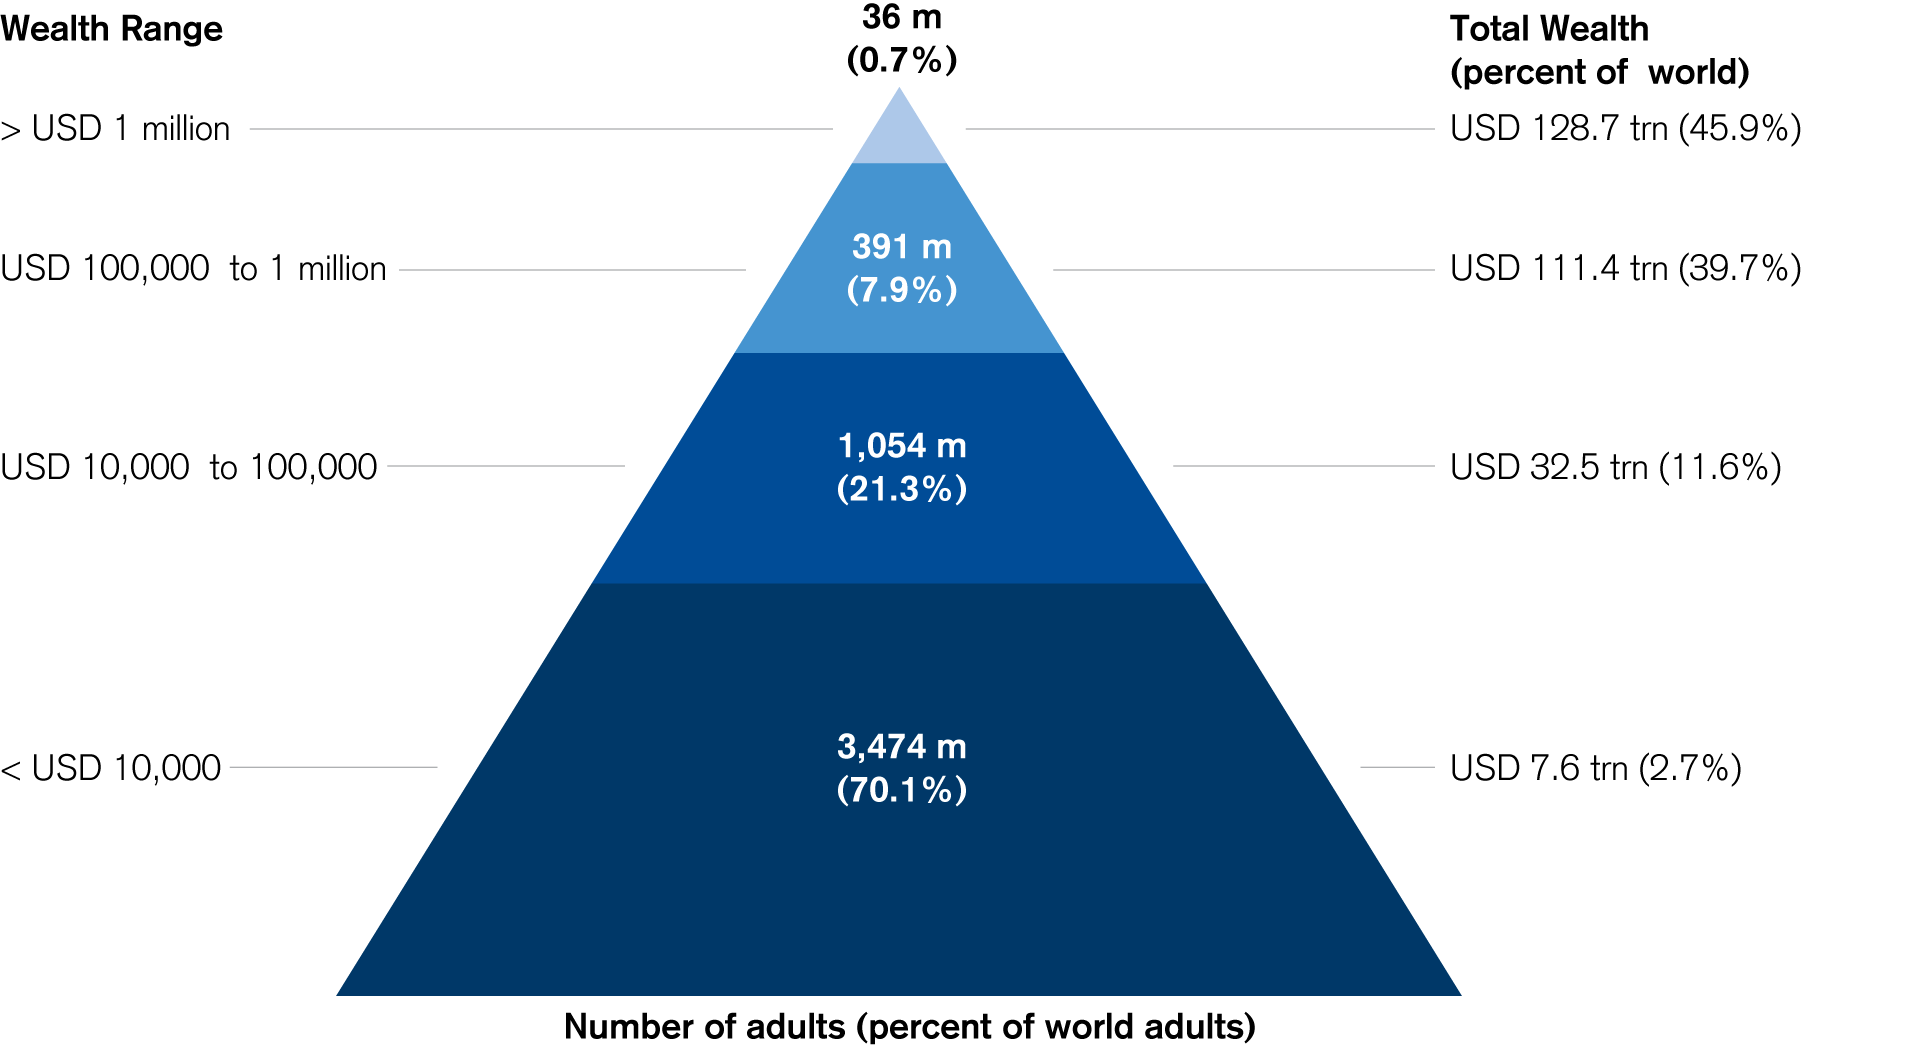 The Global Wealth Pyramid 2017